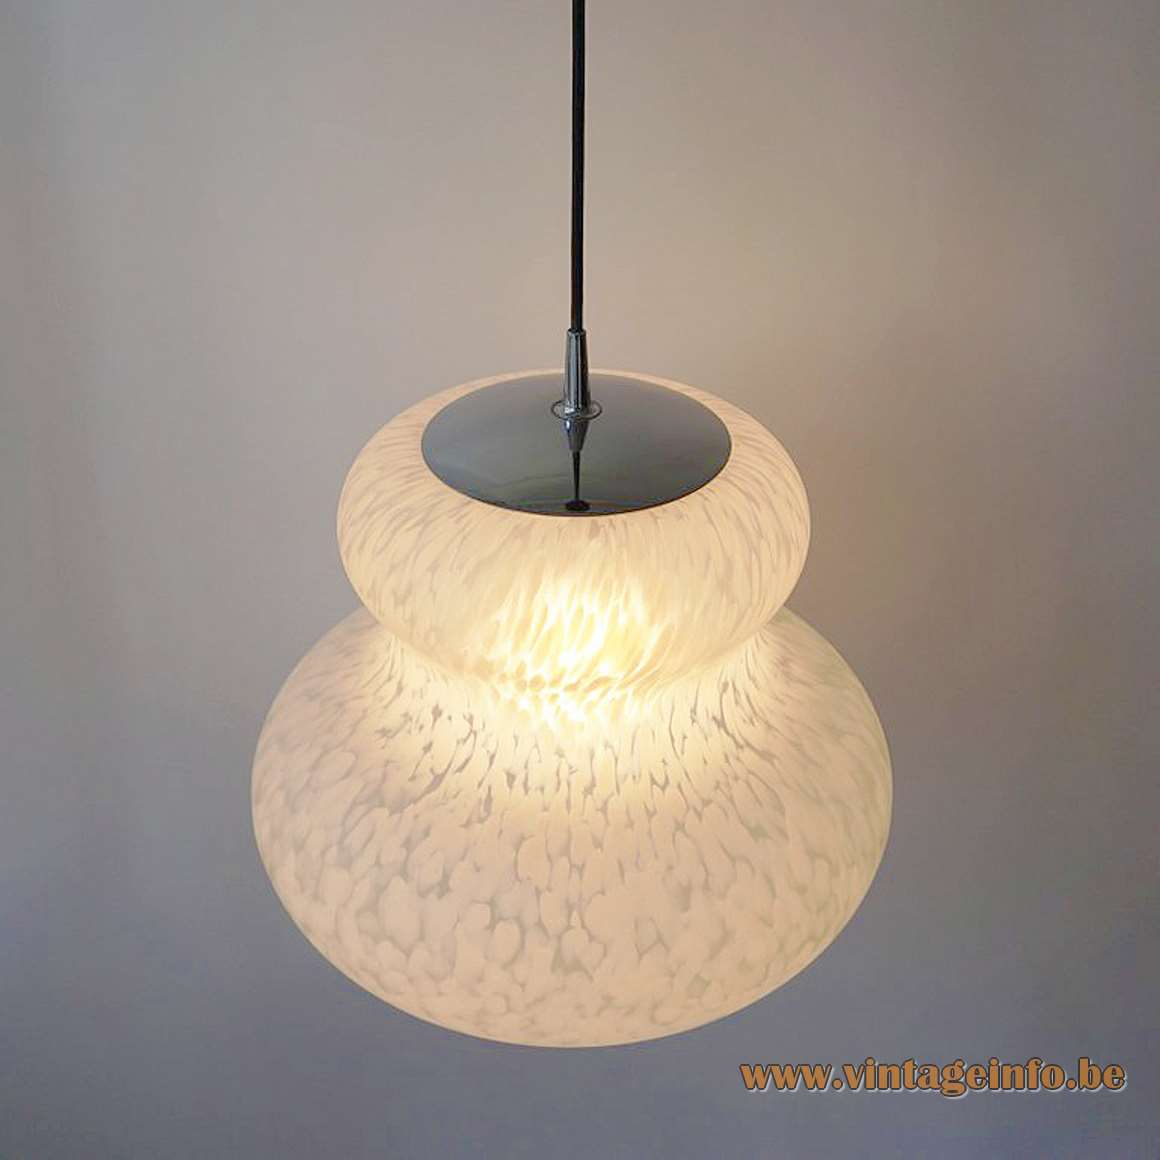 Peill + Putzler white clouds pendant lamp mottled glass butternut pumpkin chrome 1970s Germany E27 socket